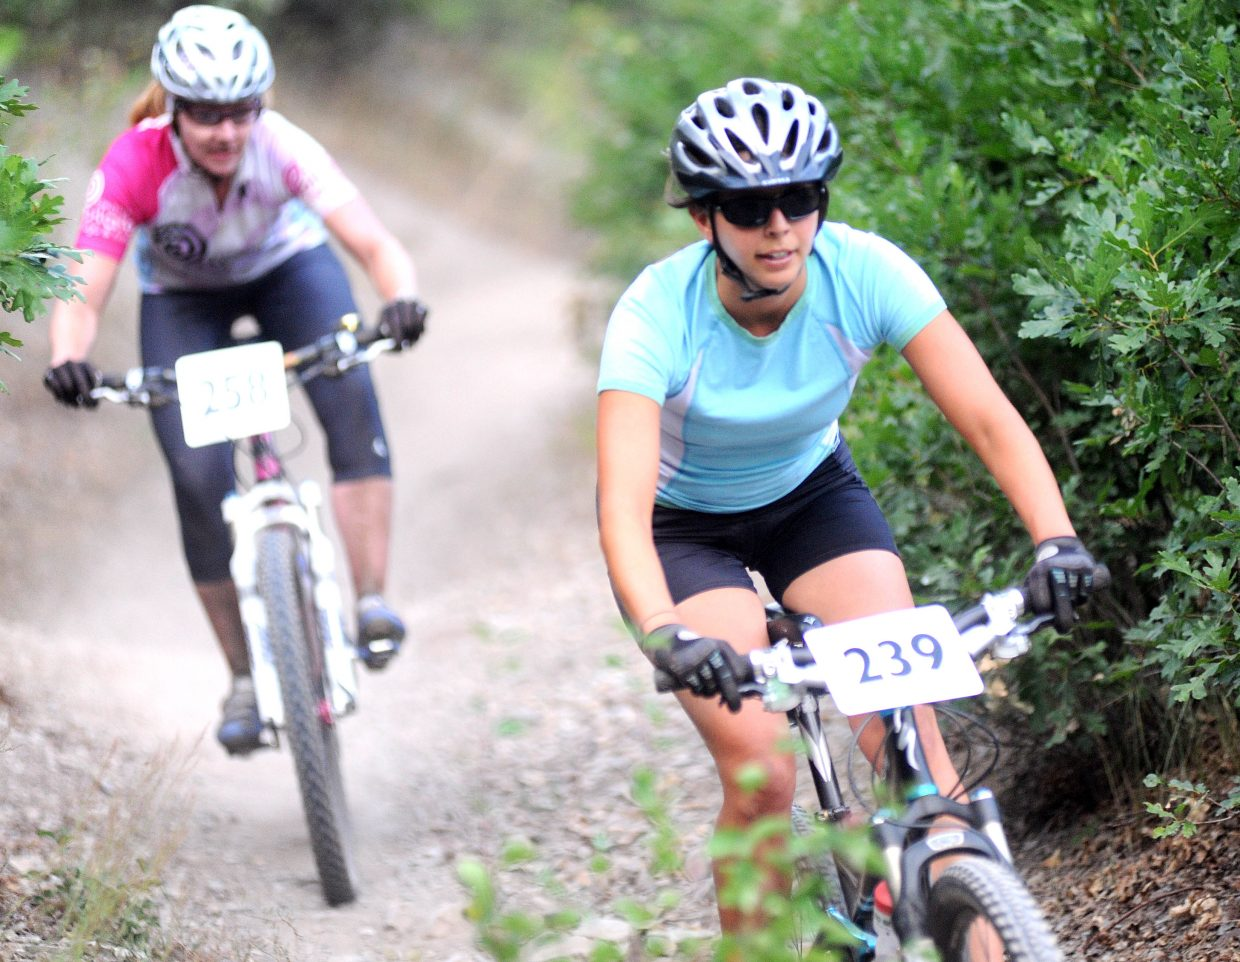 Kyleigh DiMicco, right, and Bec Bale work toward the finish line of Wednesday's Town Challenge race on Emerald Mountain.